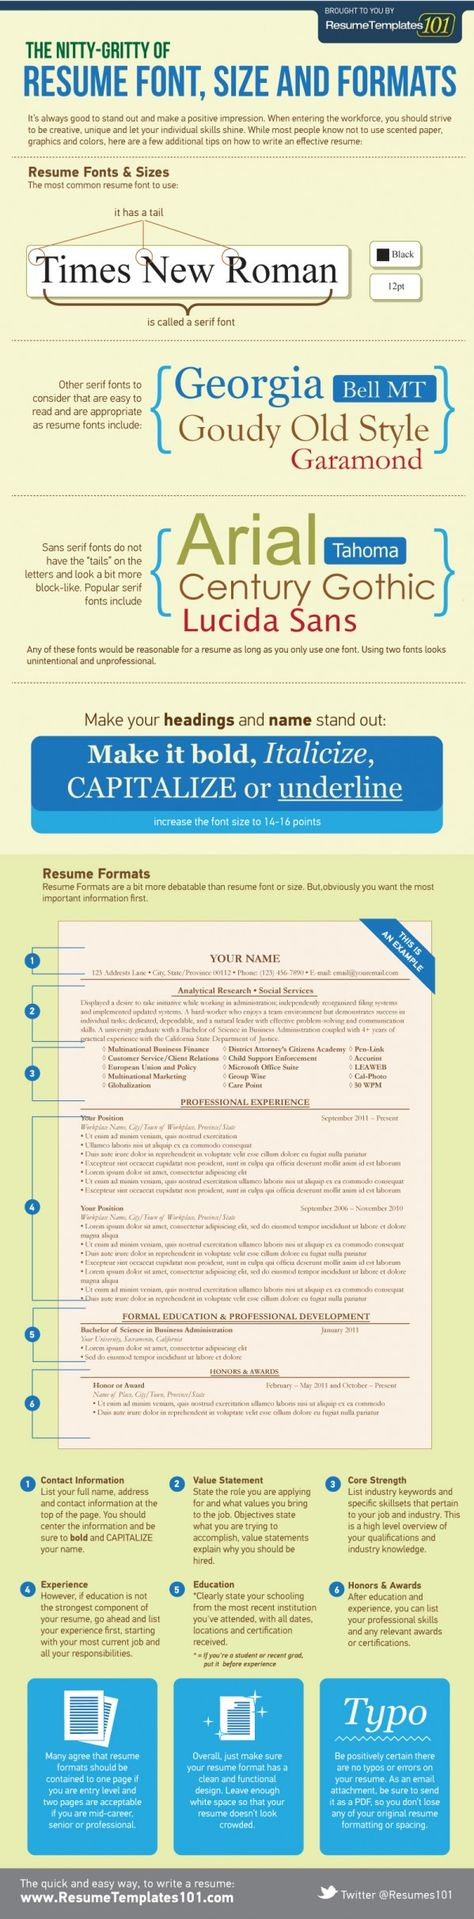 Best CV Font, Size and Format for a Successful Job Application [INFOGRAPHIC]